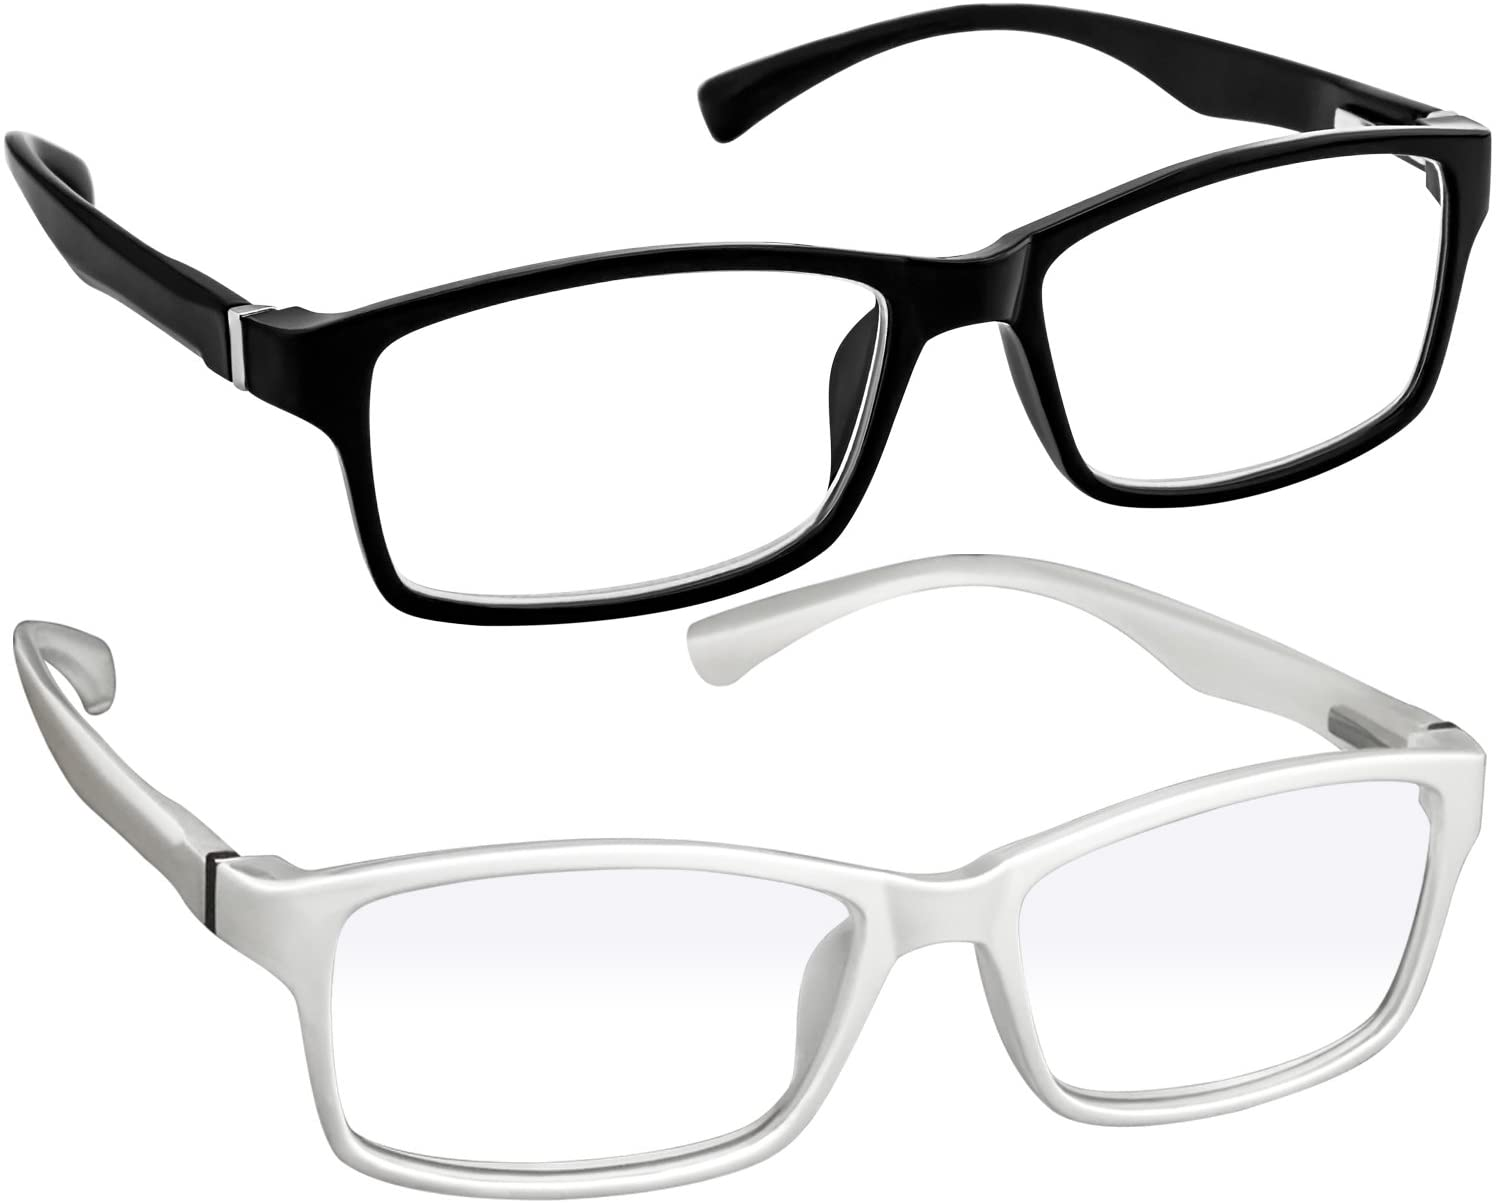 Computer Reading Glasses 0.50_Black White Protect Your Eyes Against Eye Strain, Fatigue and Dry Eyes from Digital Gear with Anti Blue Light, Anti UV, Anti Glare, and are Anti Reflective